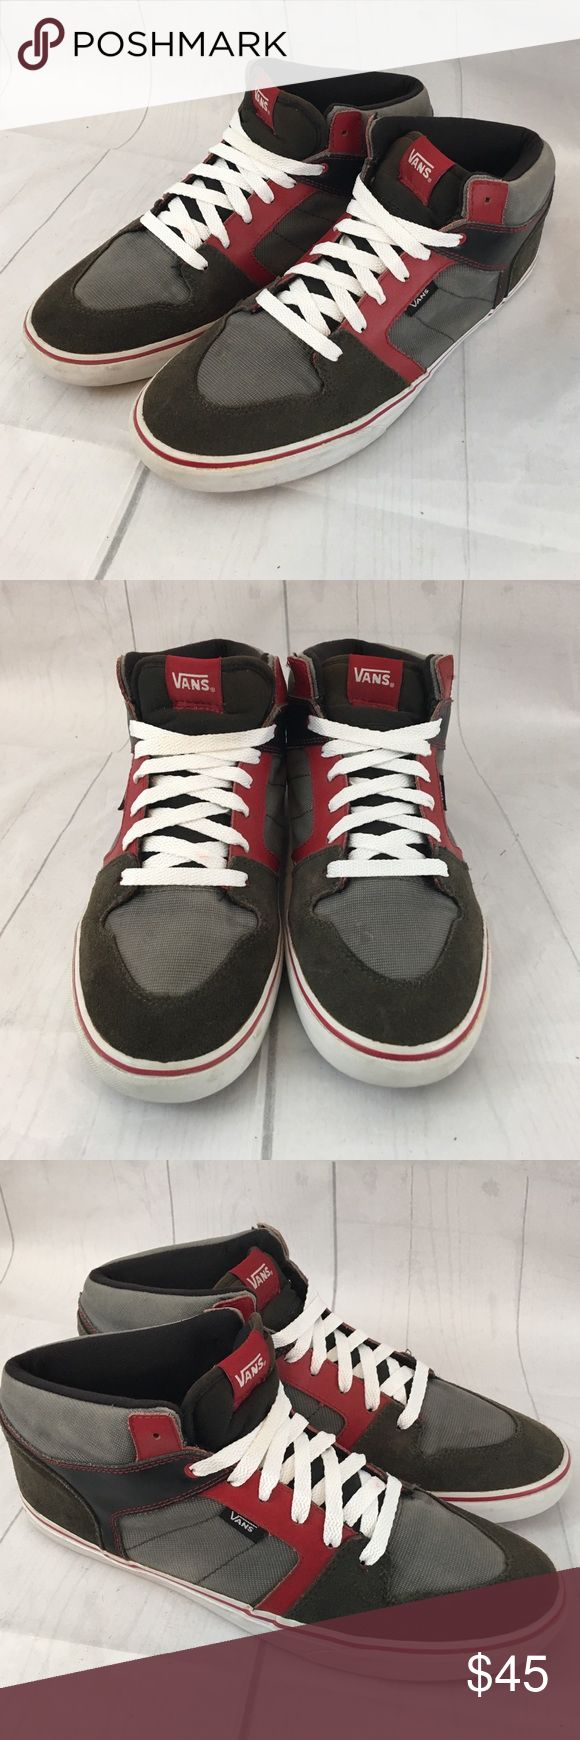 VANS High Tops Shoes Suede Shoes size 10.5 VANS High Tops Shoes Suede Red Laces TB4R shoes men 10.5 women 12  Fast Shipping  Experienced seller  Contact us with questions, we want you to love your new purchase.  Thanks for viewing and happy shopping Vans Shoes Athletic Shoes